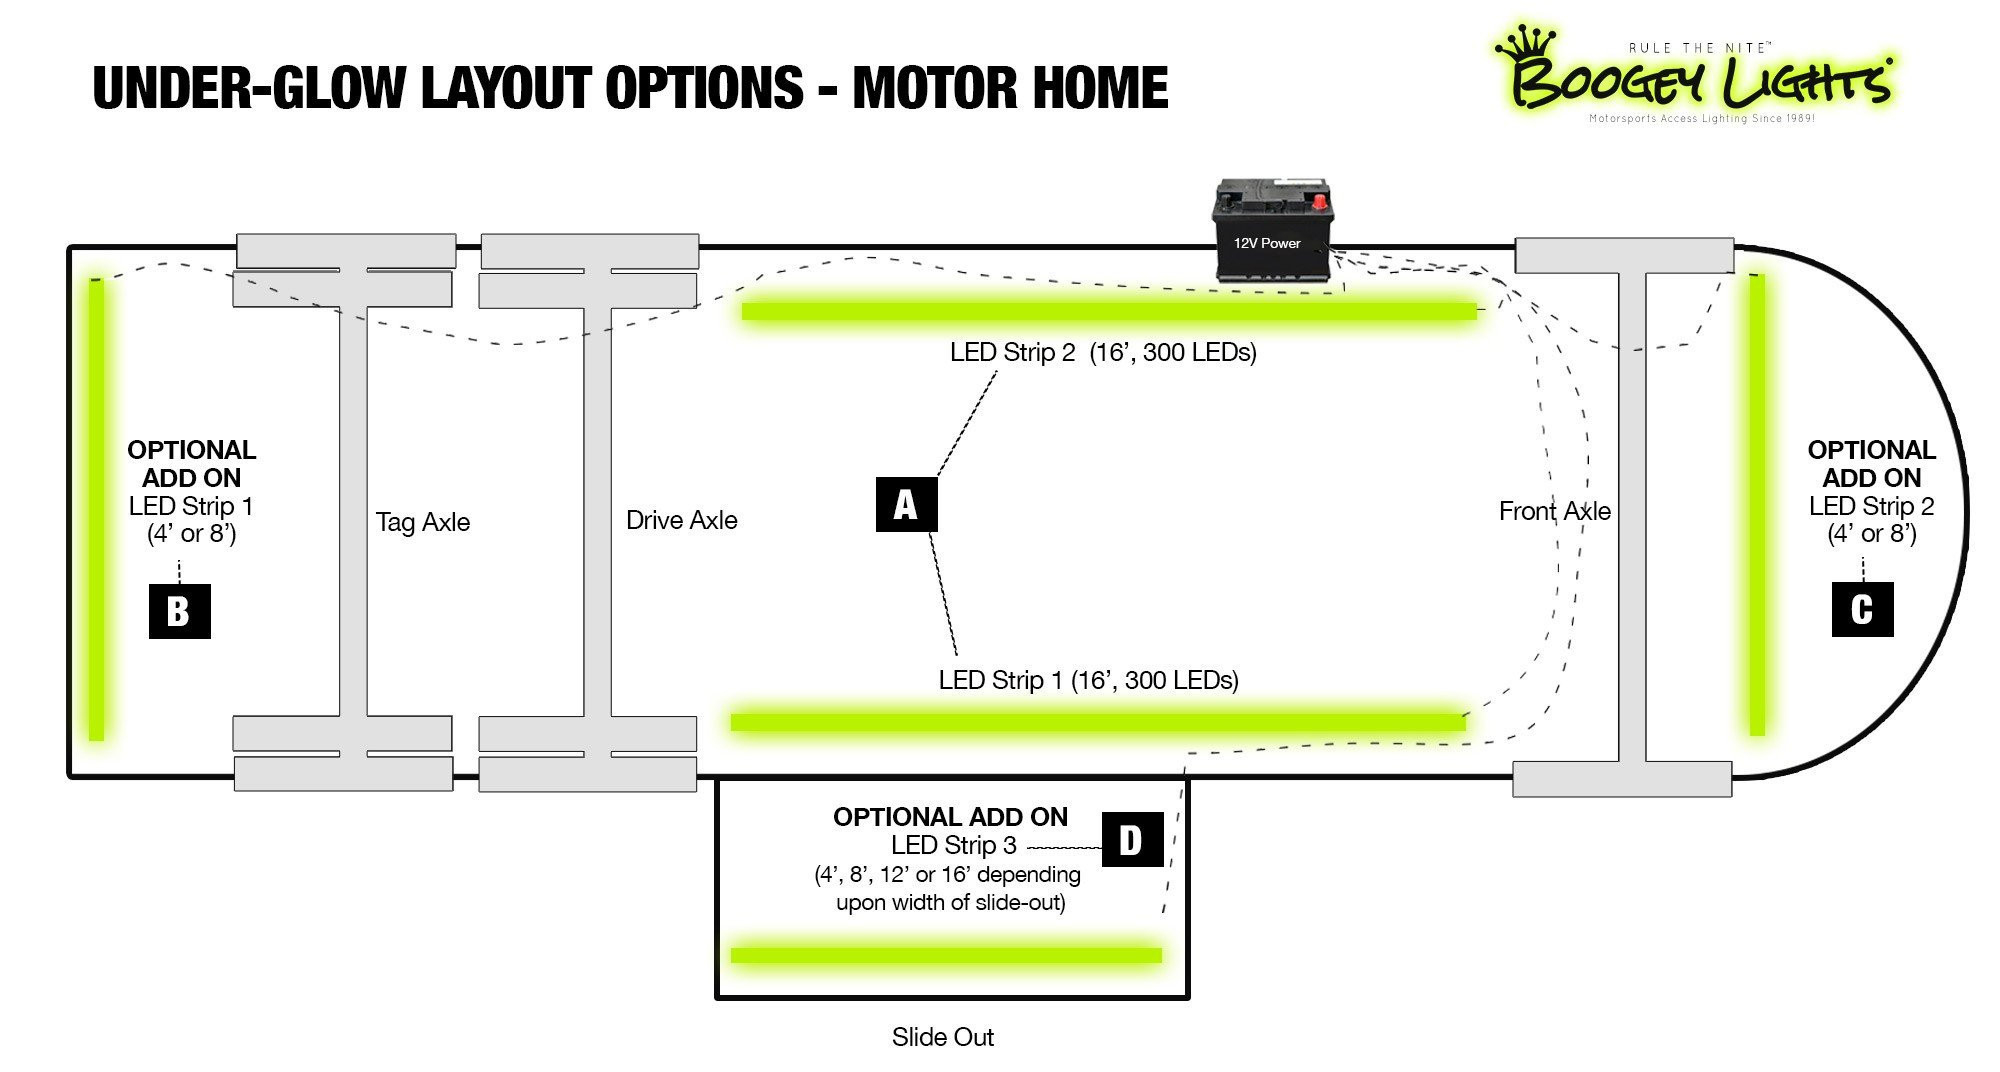 Led Trailer Lights Wiring Diagram Boat | Wiring Diagram - Boat Trailer Lights Wiring Diagram